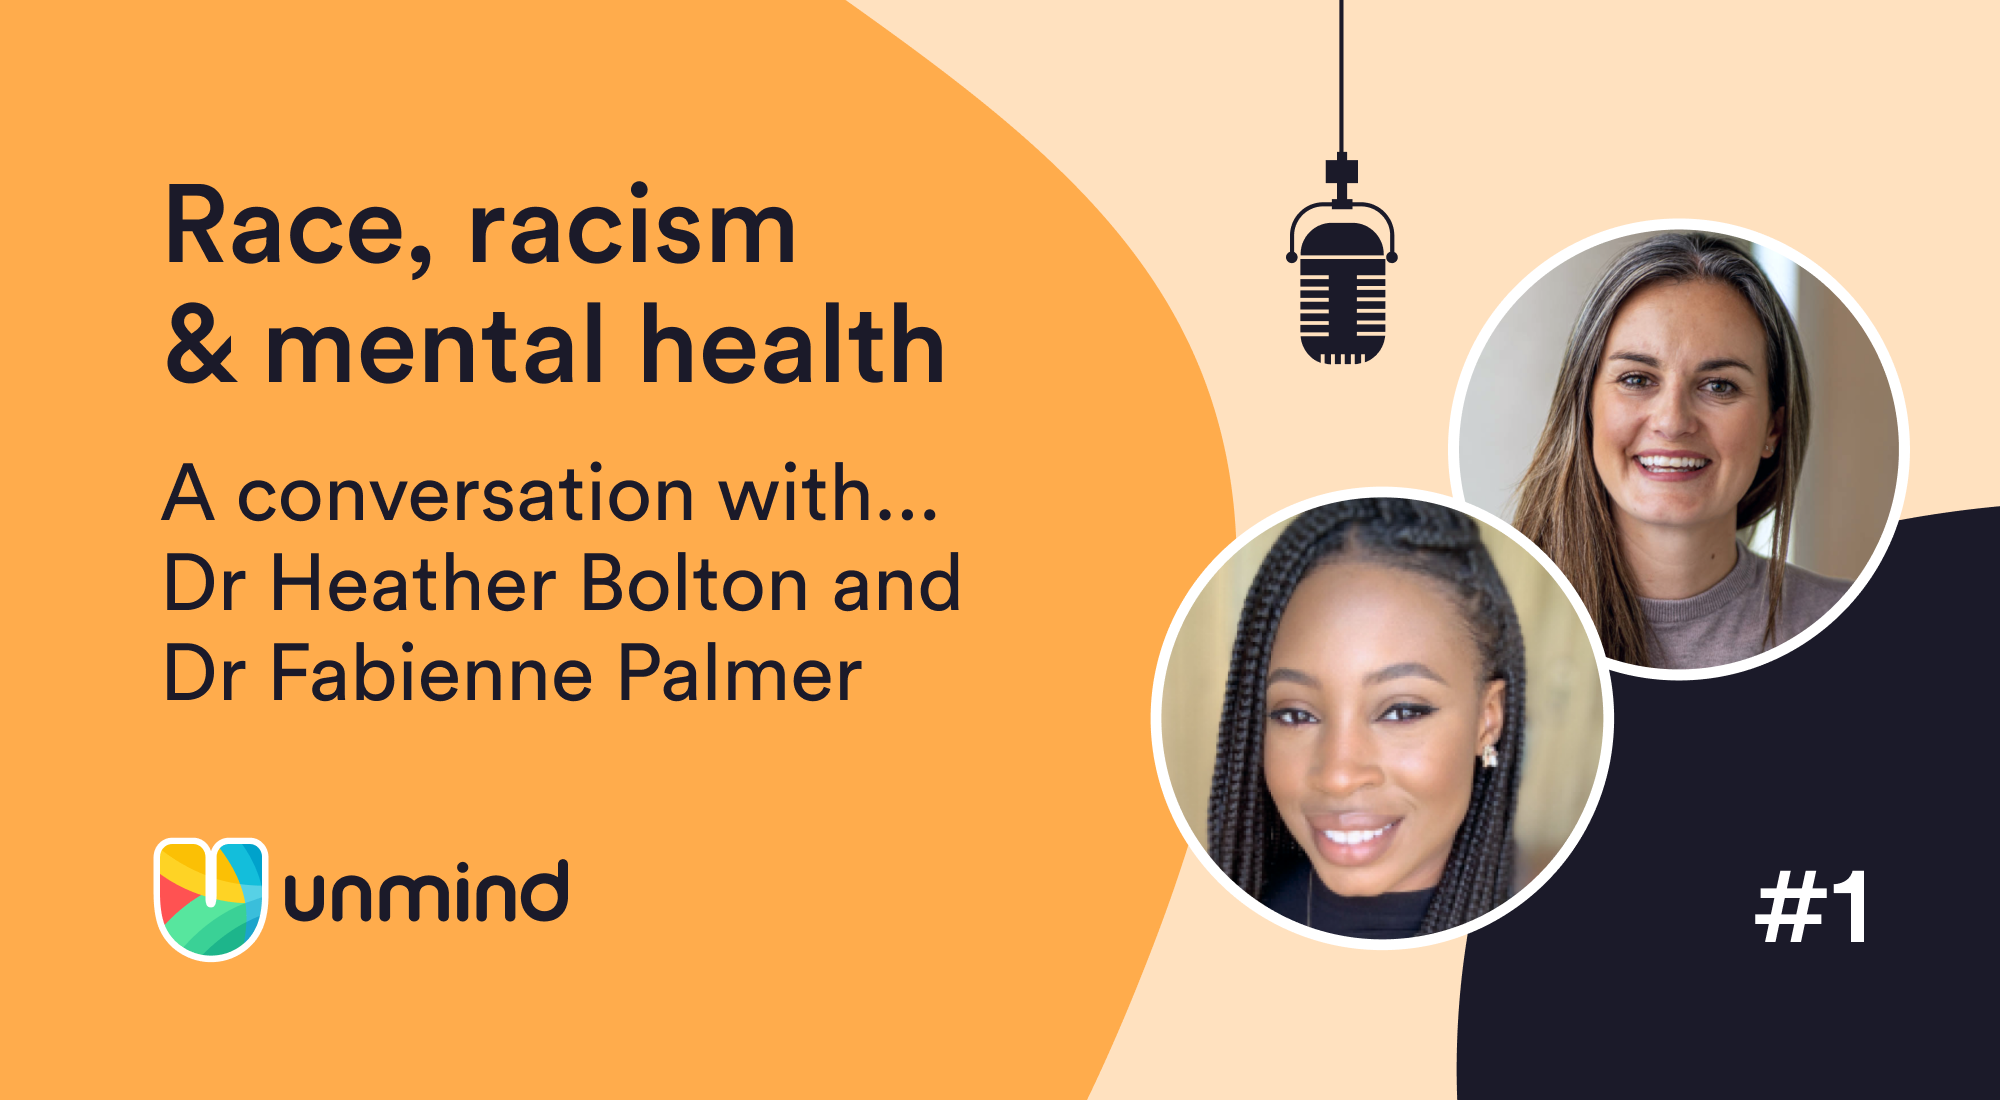 Headshots of Dr Heather Bolton and Dr Fabienne Palmer who discussed race, racism and mental health